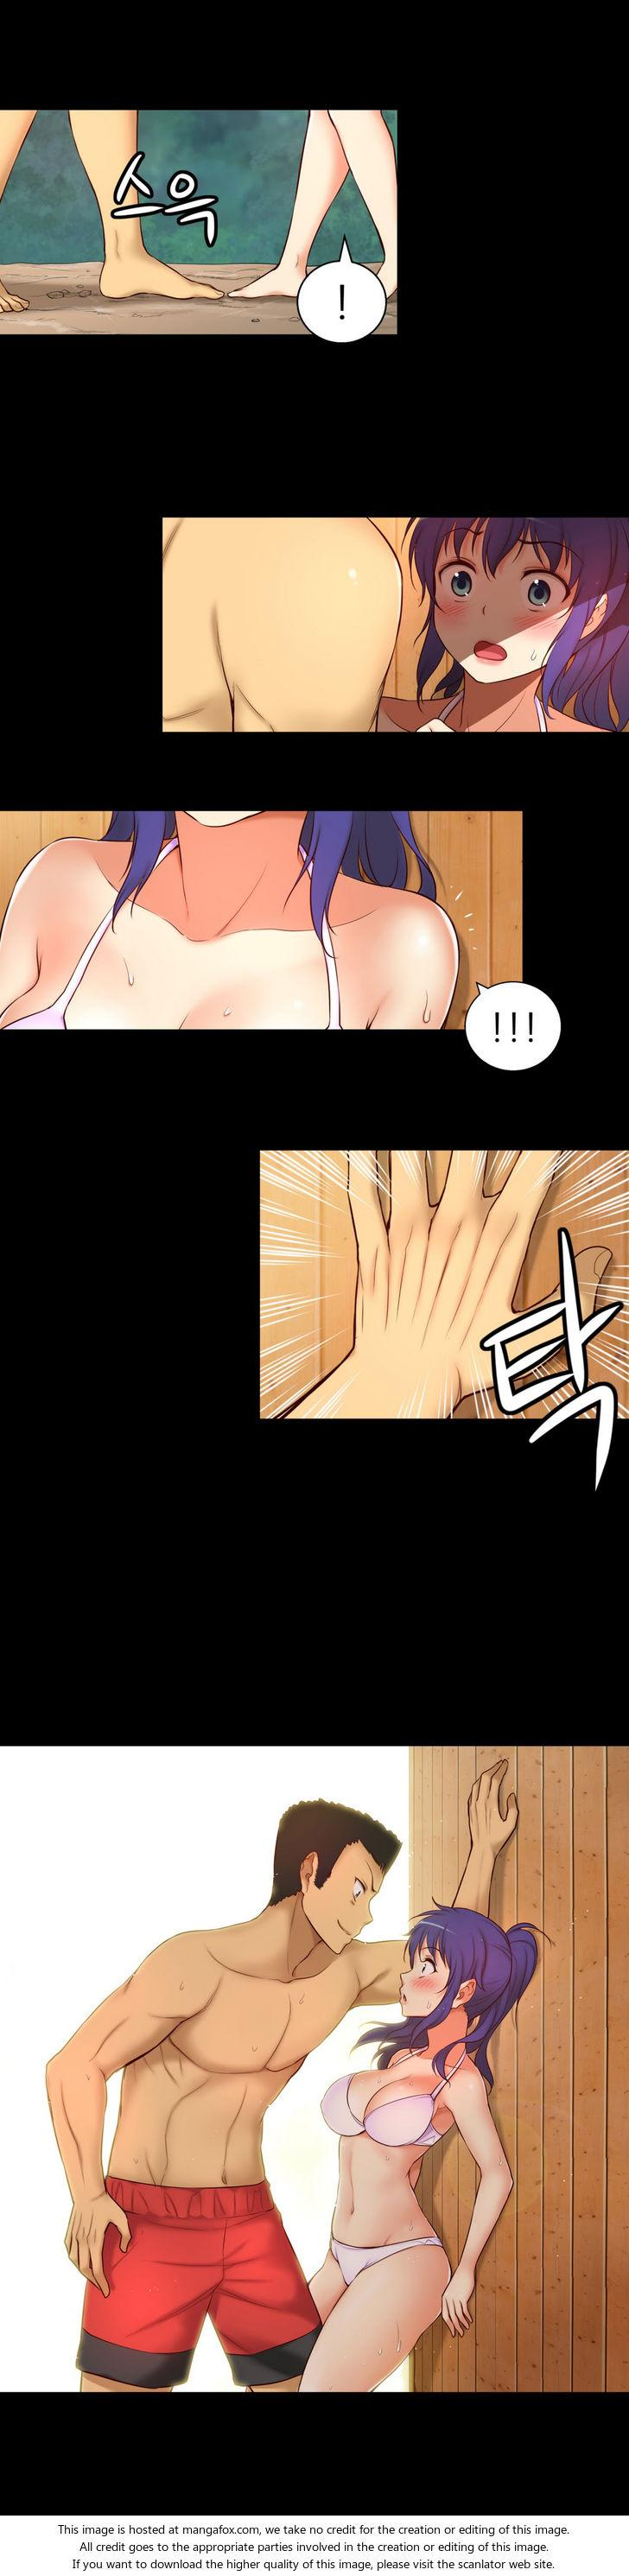 [Donggul Gom] She is Young (English) Part 1/2 1069